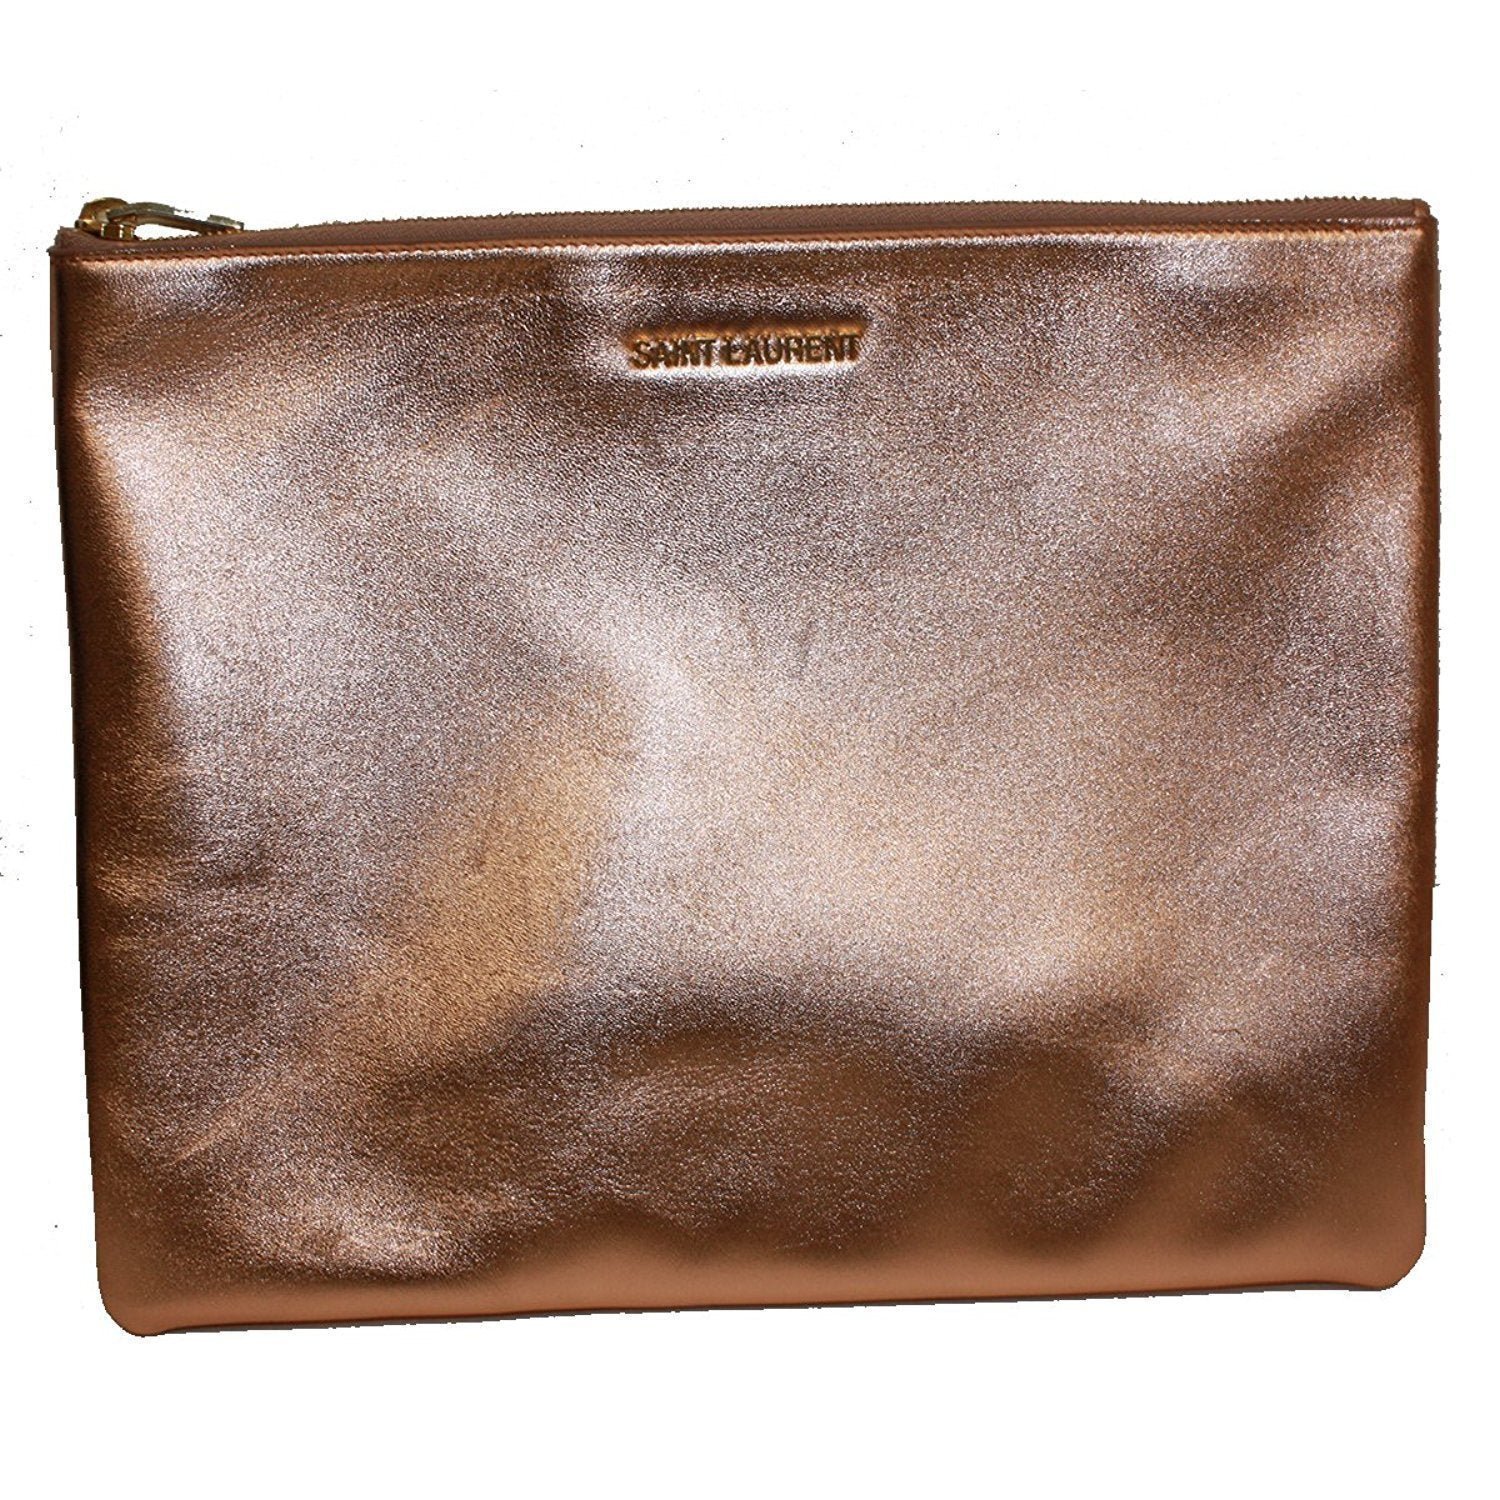 Saint Laurent Metallic Rose Gold Large Envelope Clutch Handbag 328517